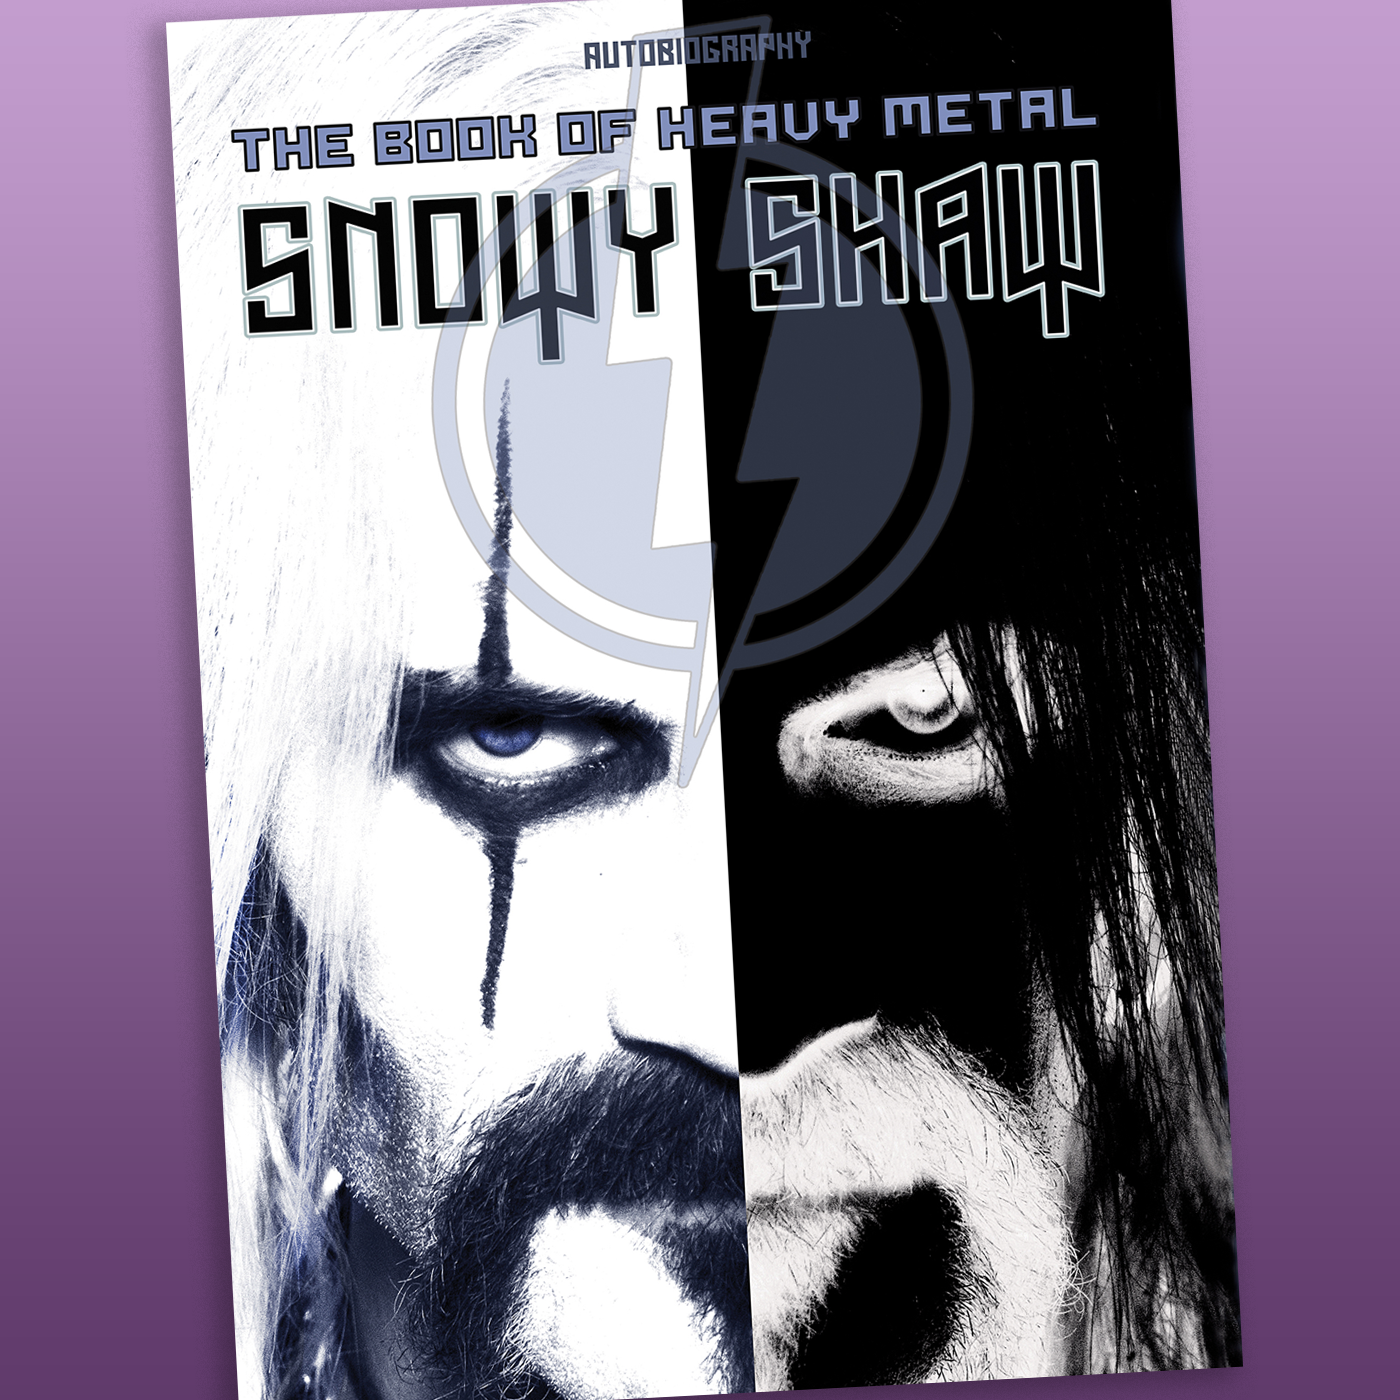 The Book of Heavy Metal